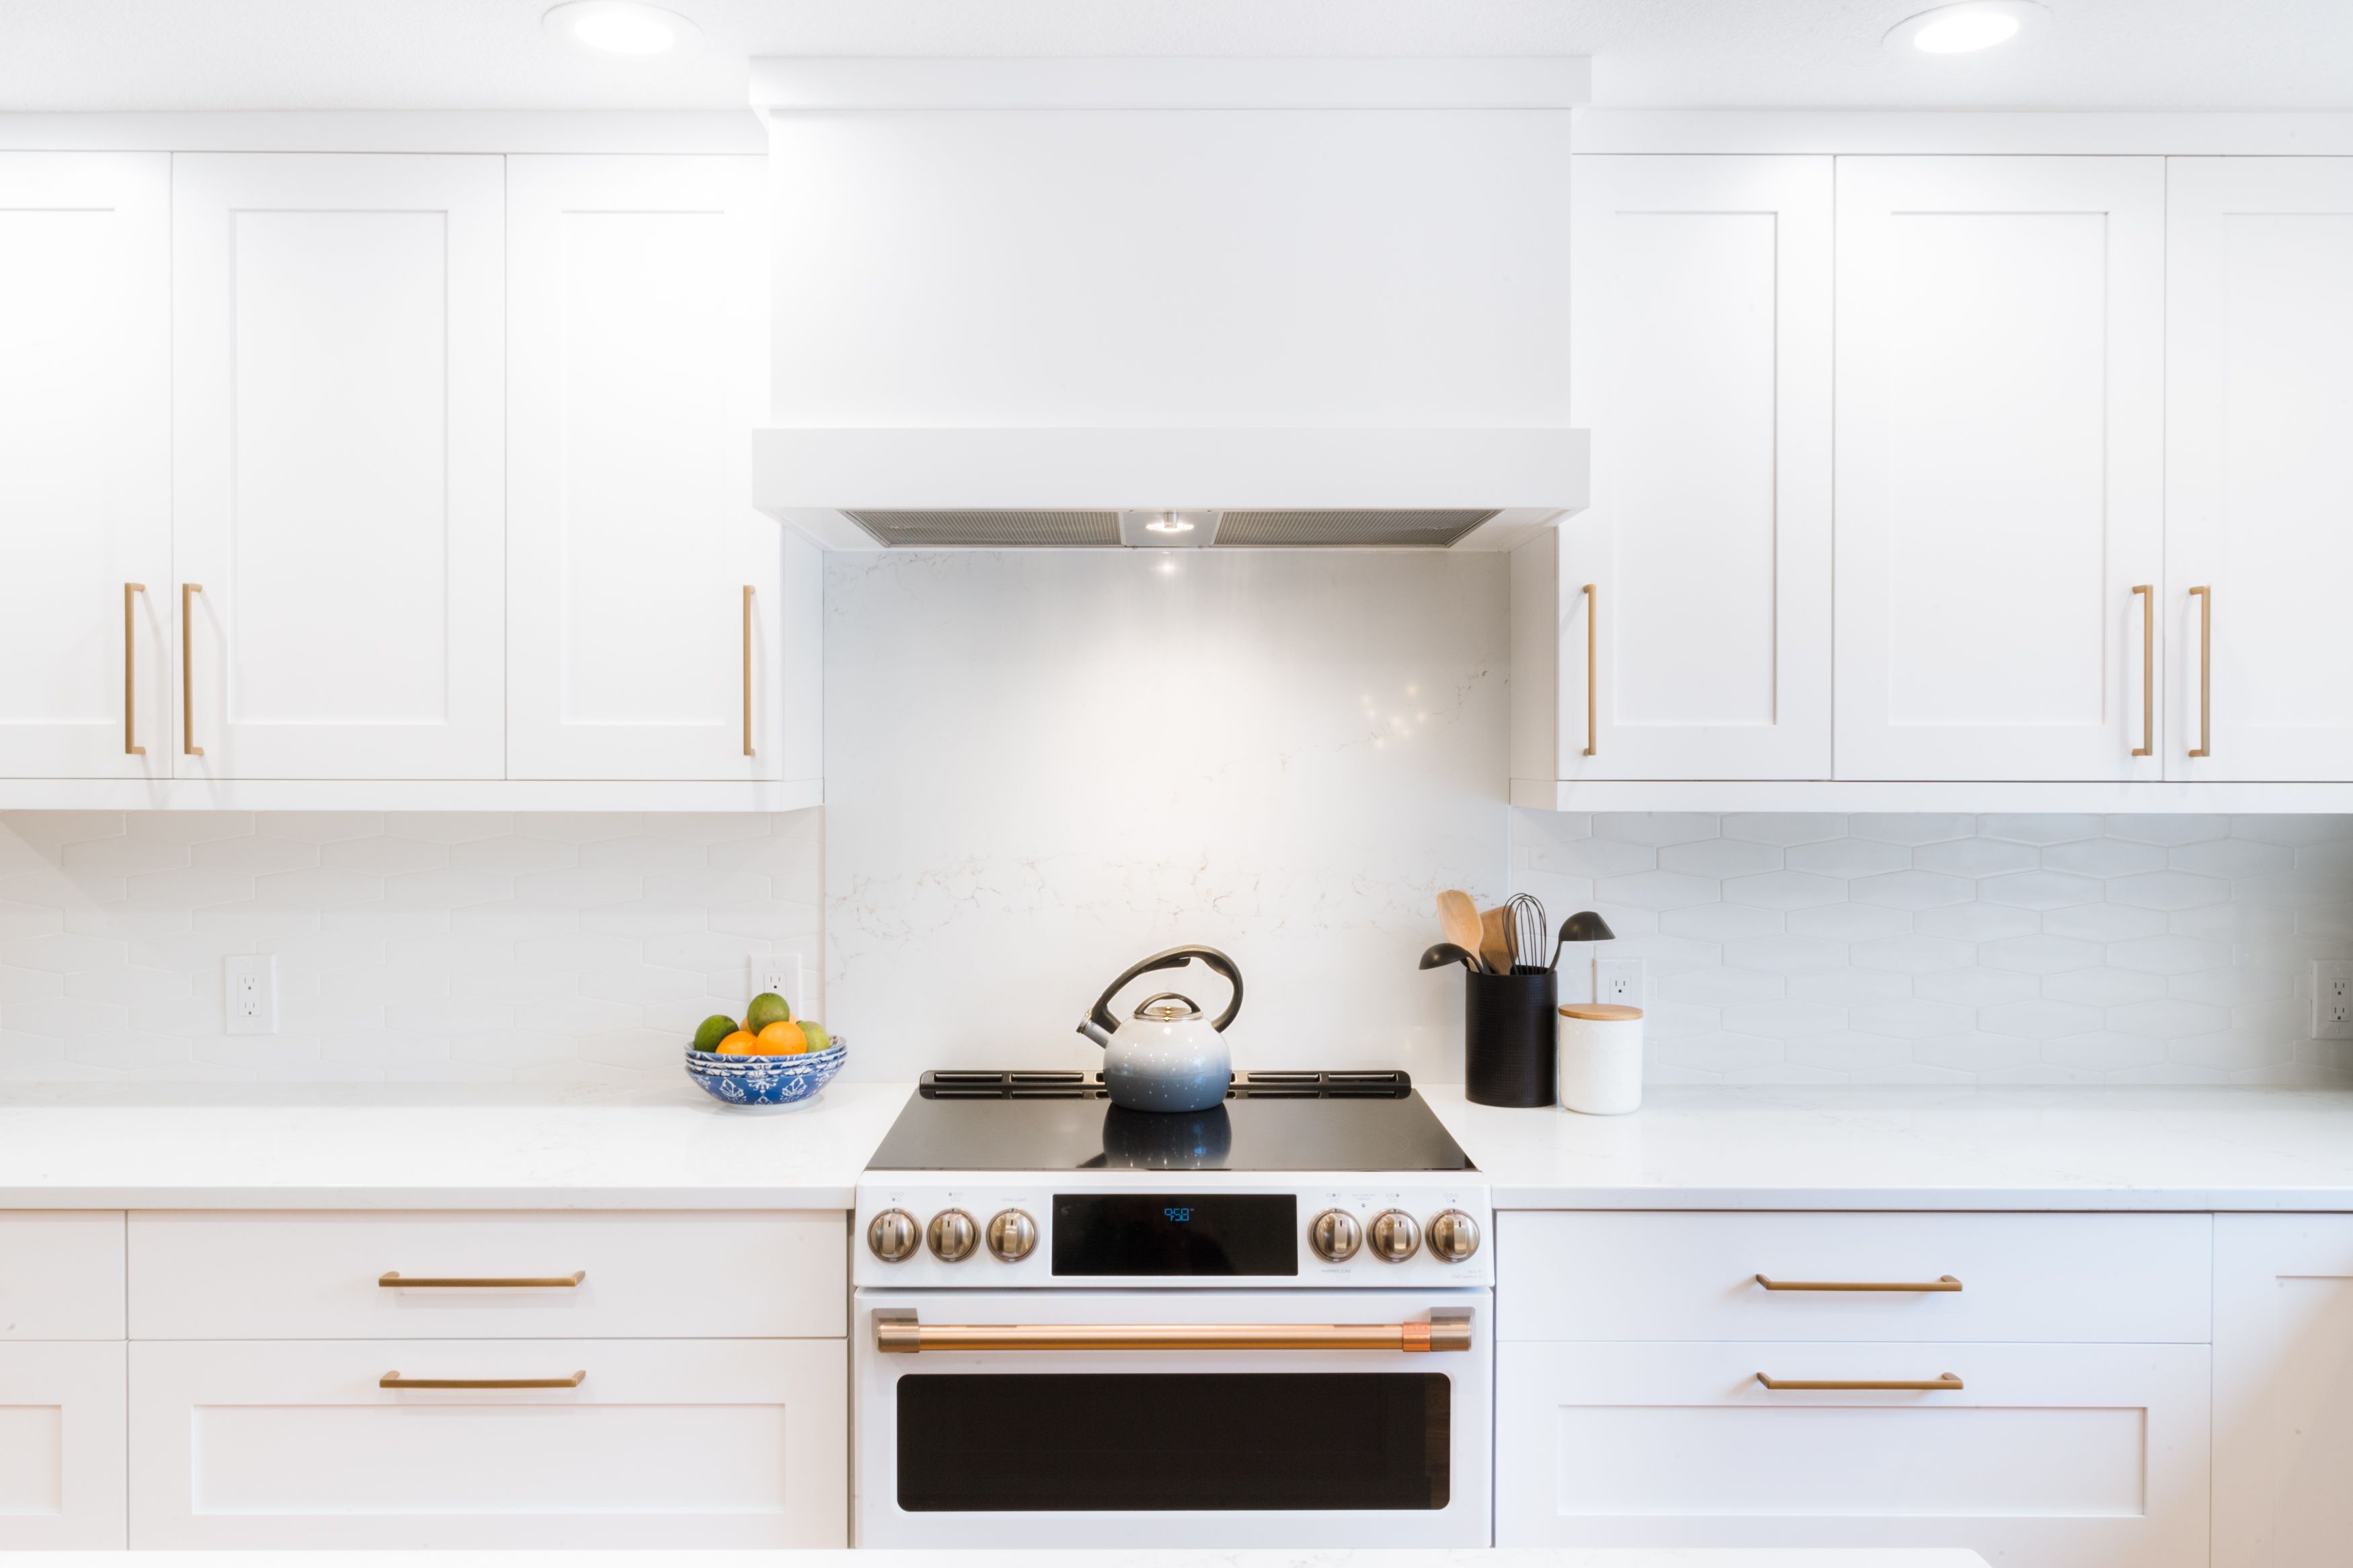 A Bright Clean Range And Hood With A One Piece Marble Backsplash Remodel Remodelingkitchenideas Remodelingideas Kitchen Remodel Kitchen Design Remodel